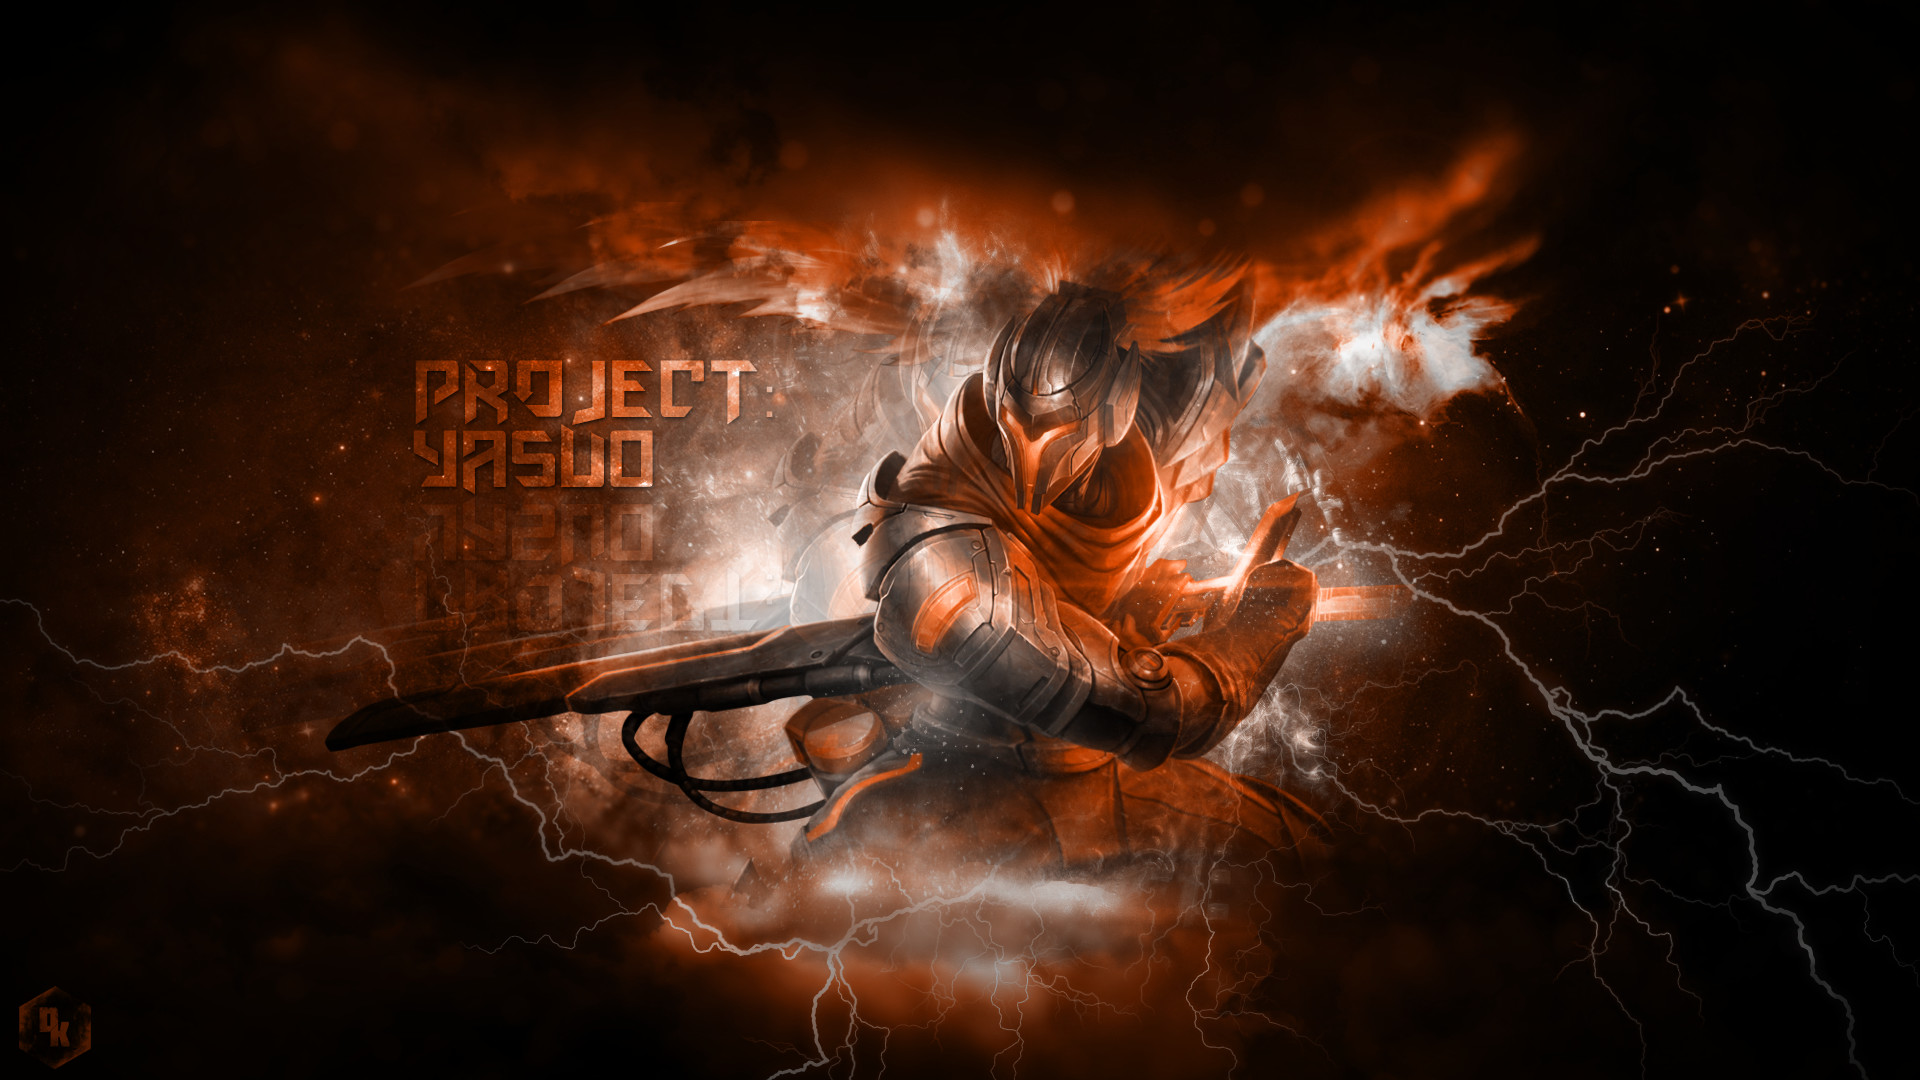 1920x1080 Project Yasuo Wallpaper, Fantastic Project Yasuo .